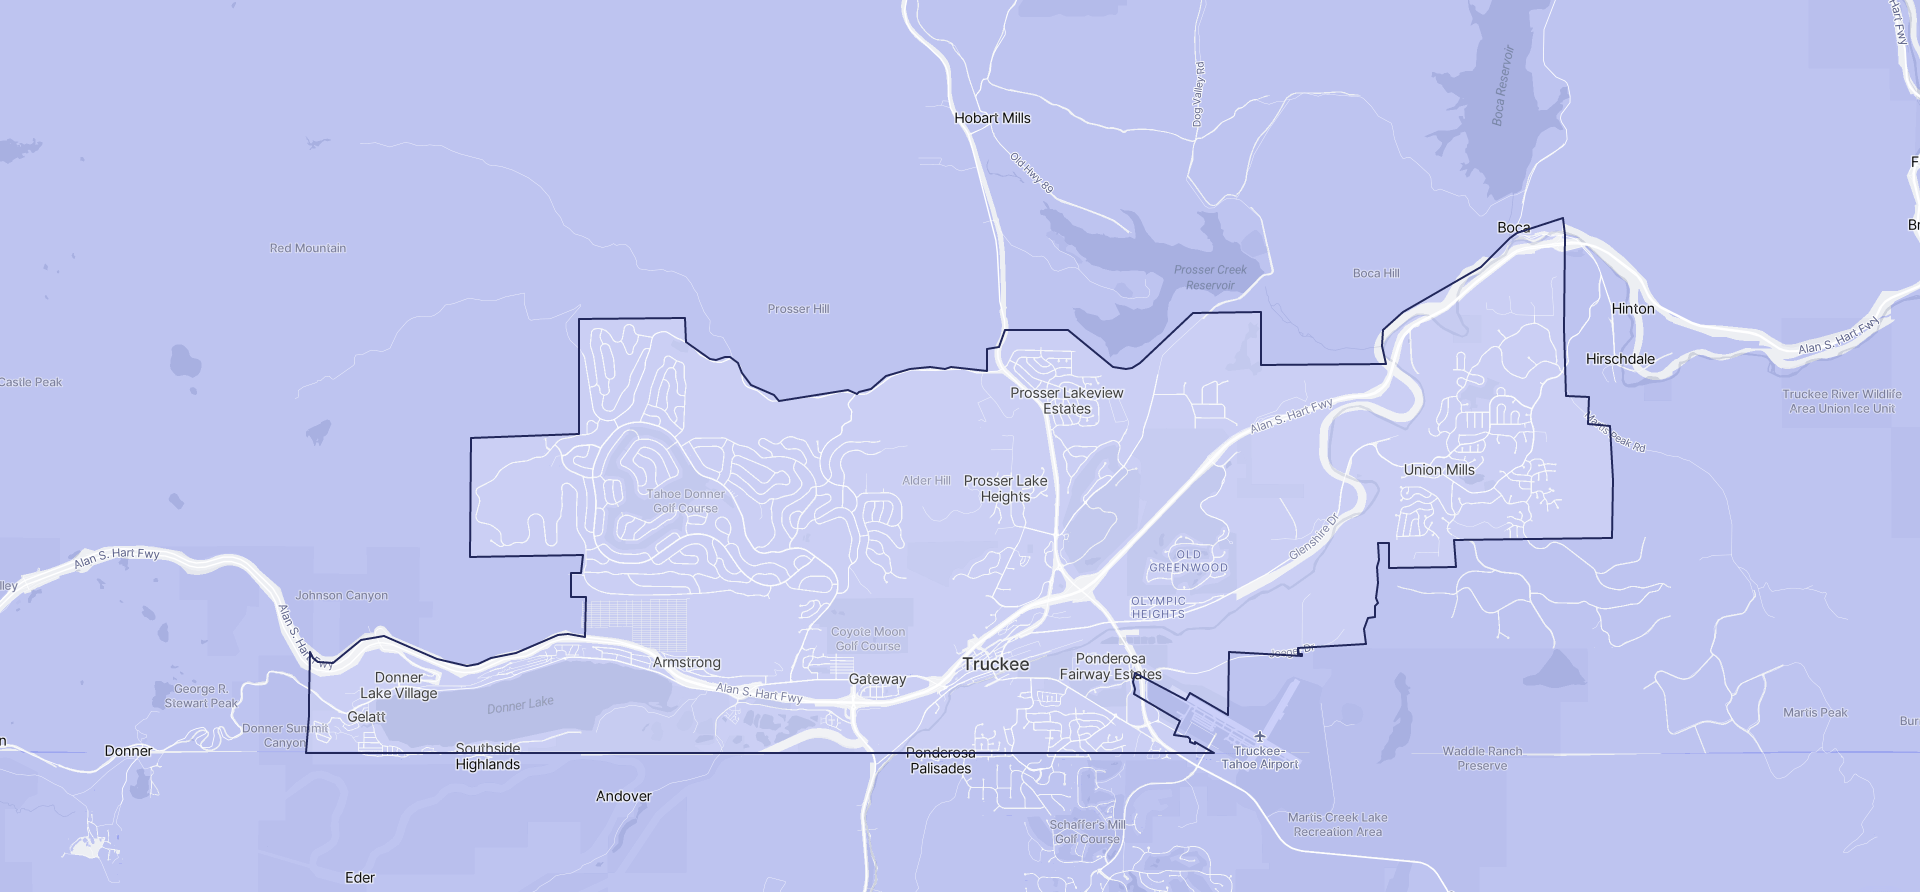 Image of Truckee boundaries on a map.